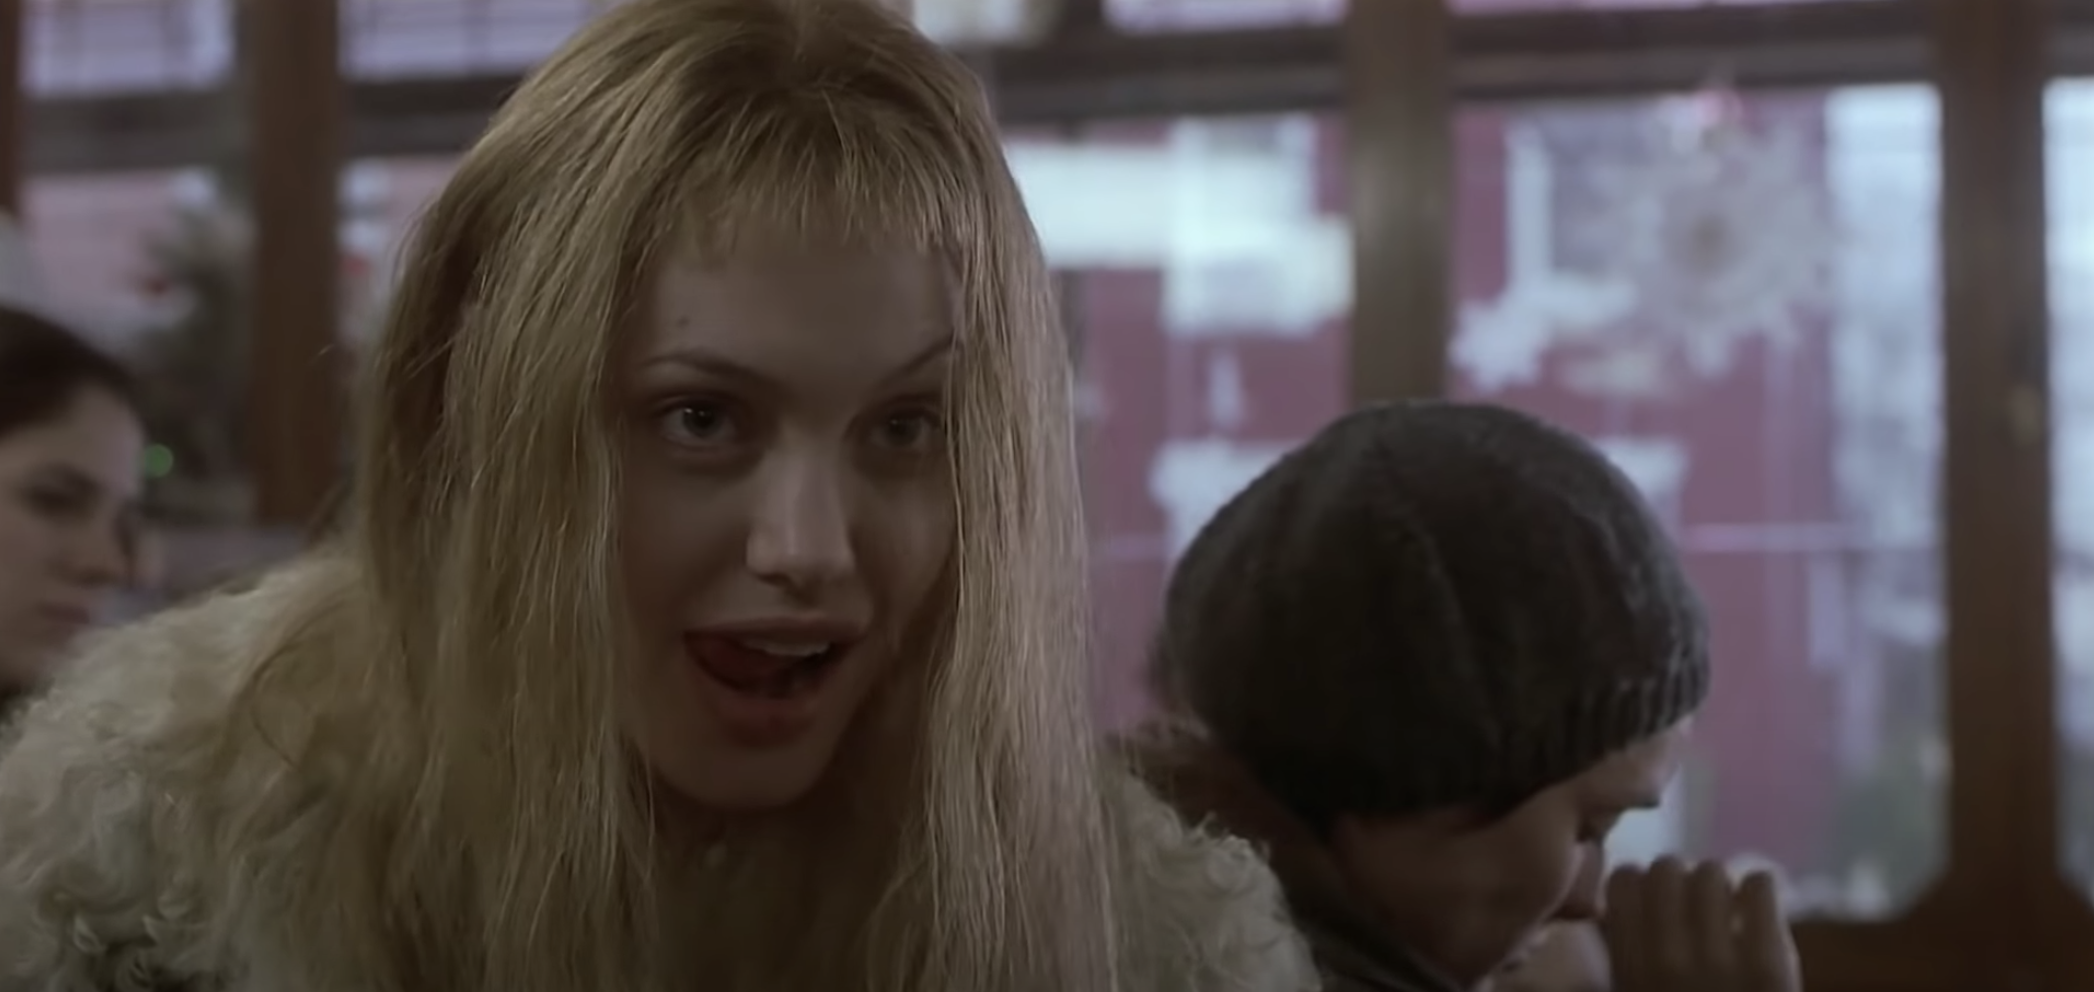 Angelina Joile with extremely short bangs